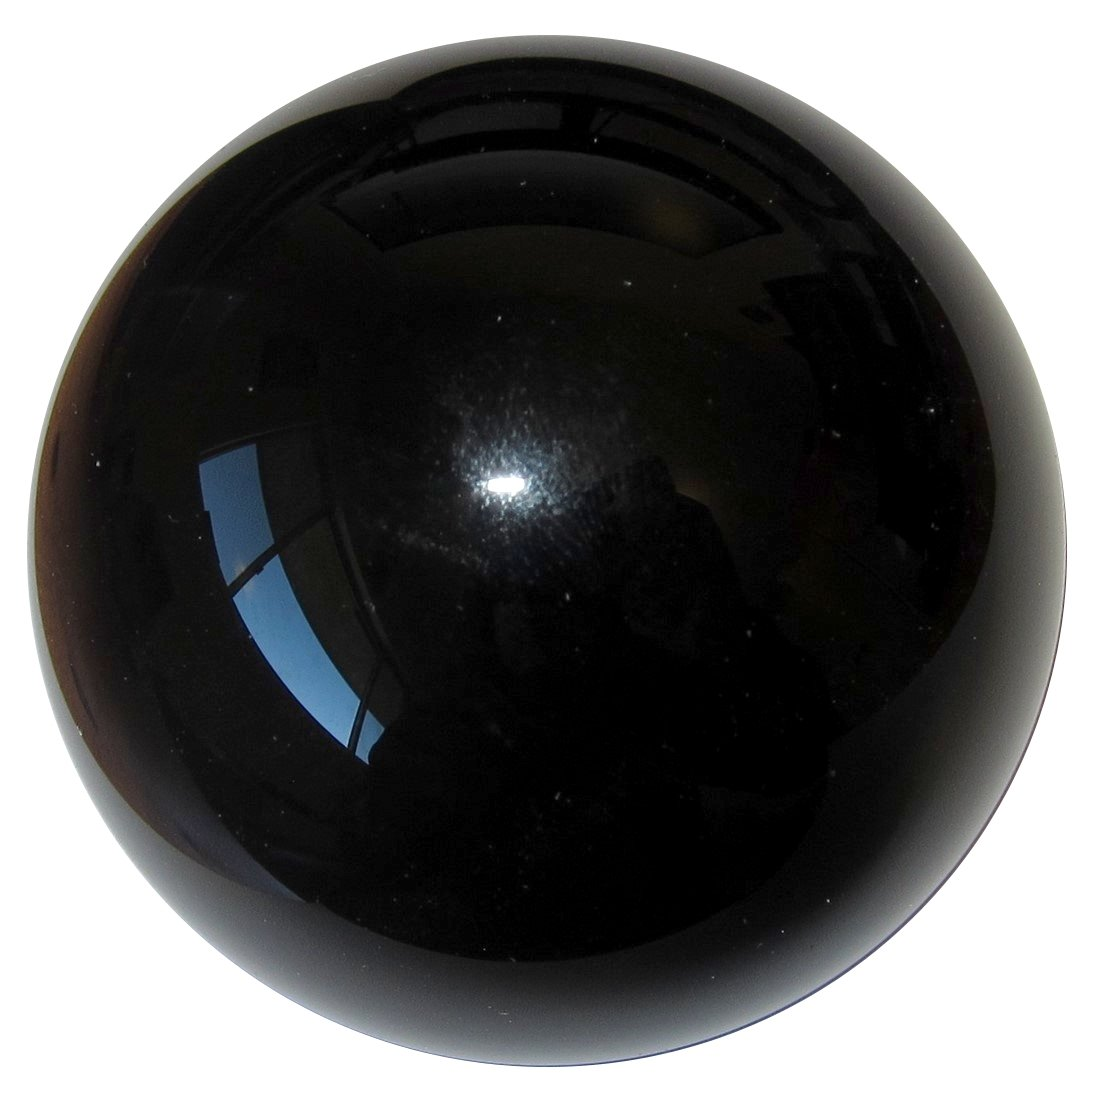 Satin Crystals Obsidian Black Ball Premium Protective Stone Volcanic Glass Grounding Healing Sphere P01 (4.3 Inches) by SatinCrystals